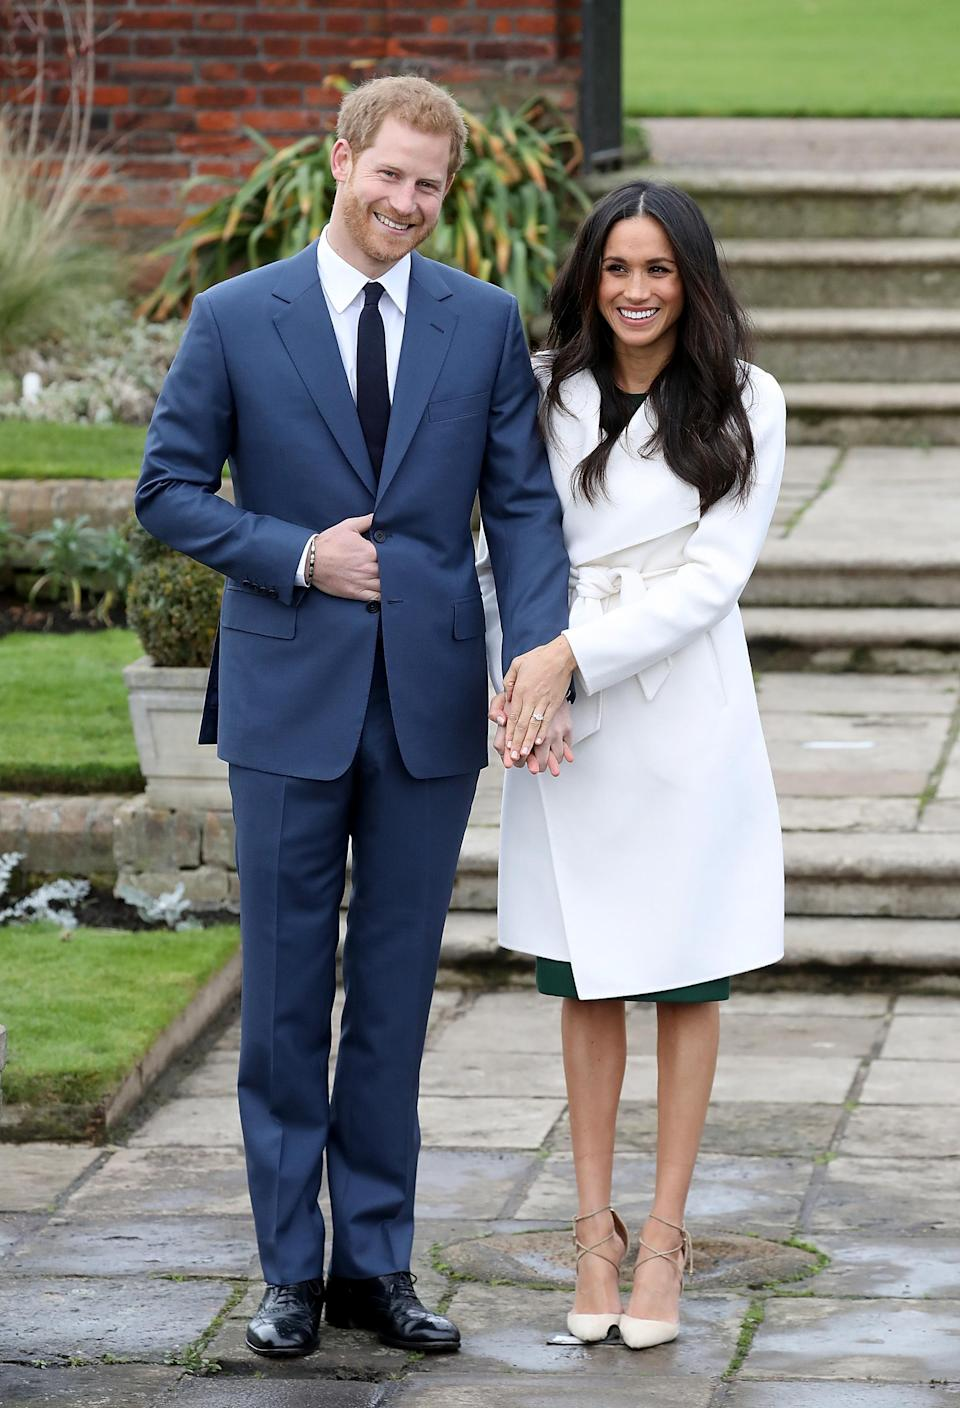 <p>The Suits actress broke another unwritten rule the day the couple announced their engagement. While most were focused on the actresses' three-diamond engagement ring, a few eagle-eyed observers noticed that she wasn't wearing pantyhose — a fashion faux-pas for members of the royal family.</p>